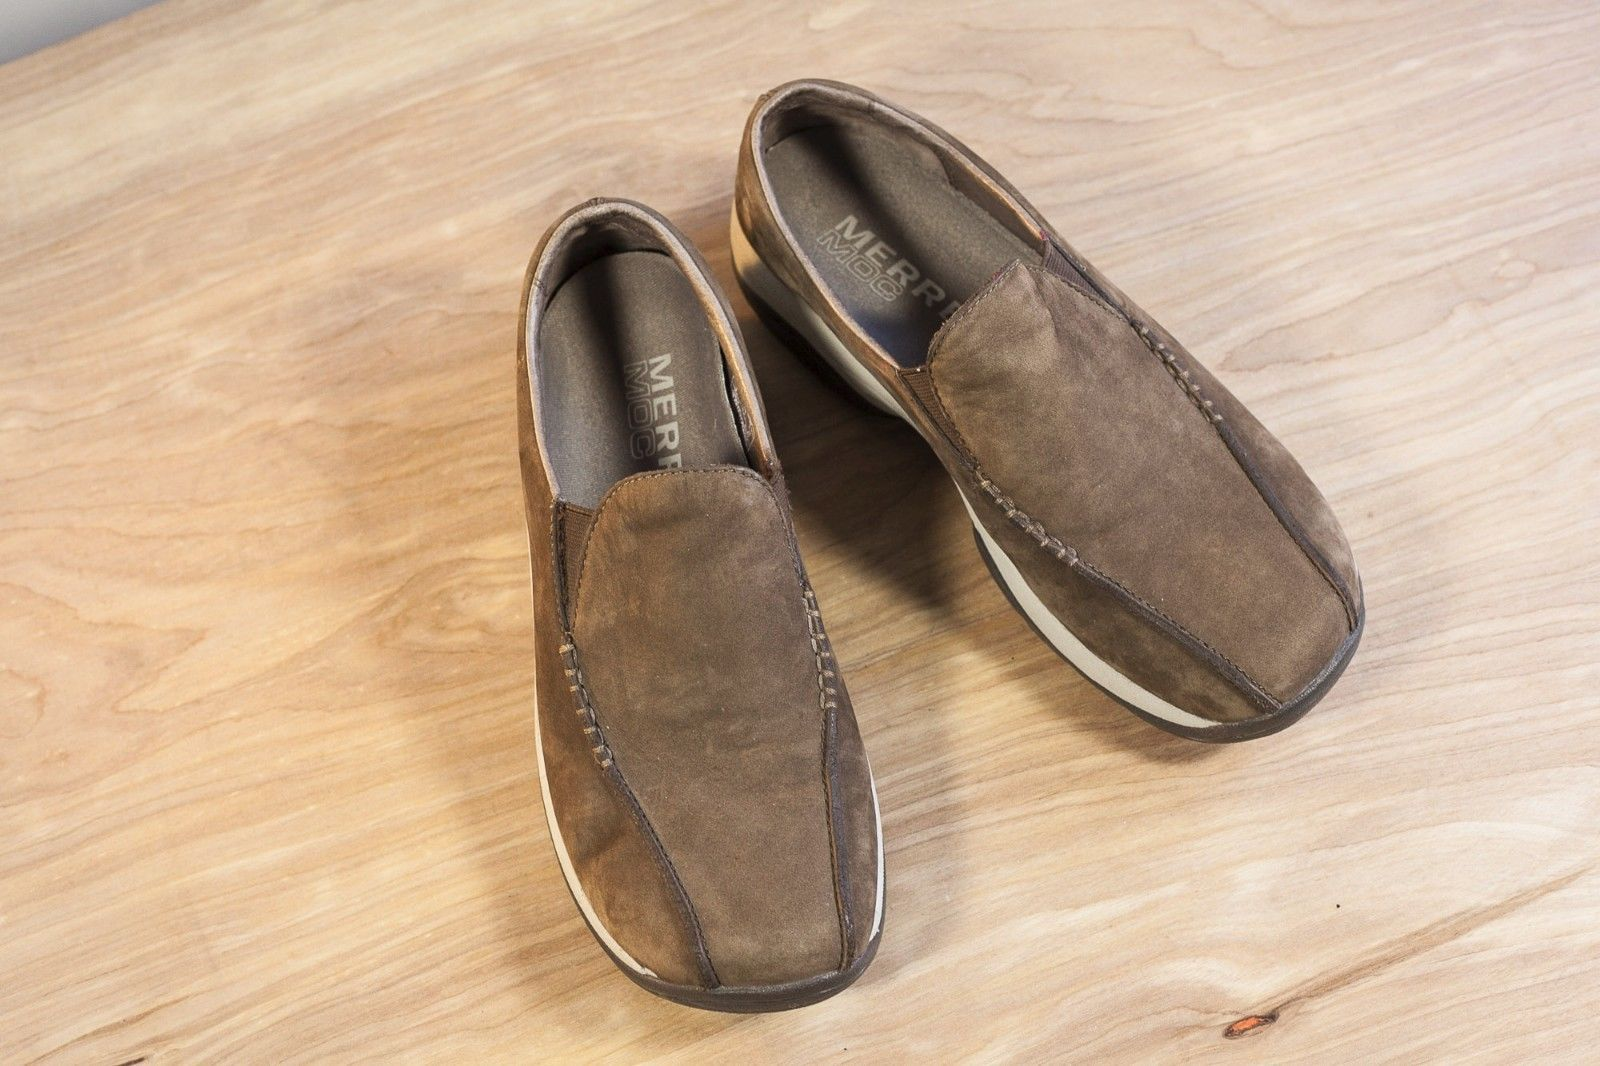 Merrell Primo Seam Moc 9 Brown Suede Women's Slip On Shoe DK Taupe